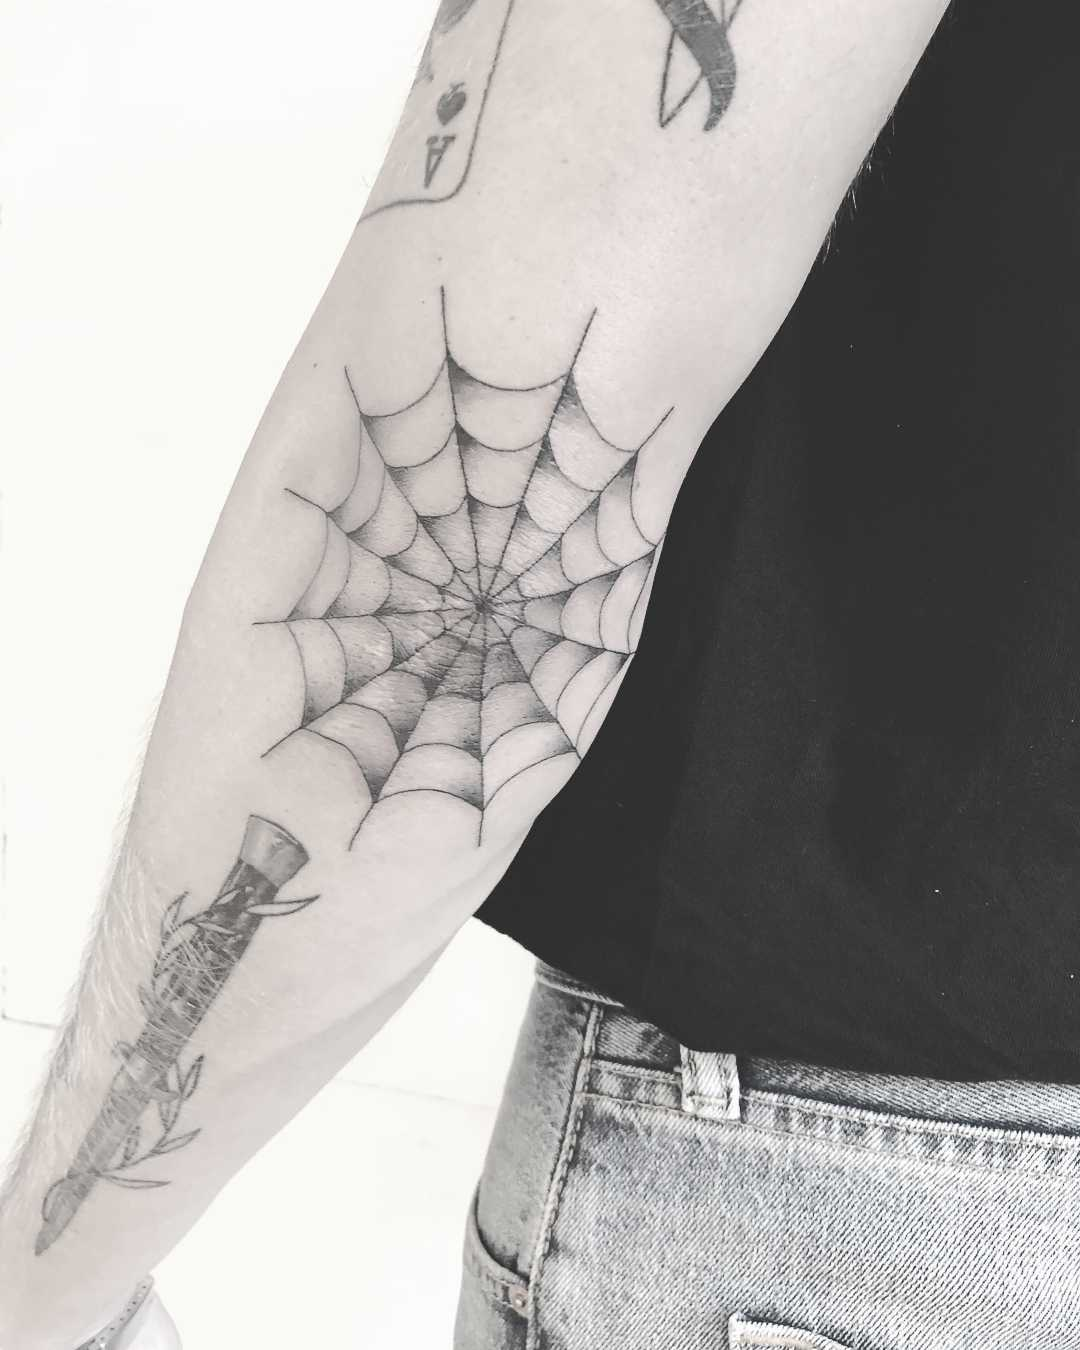 Spider web tattoo by Annelie Fransson